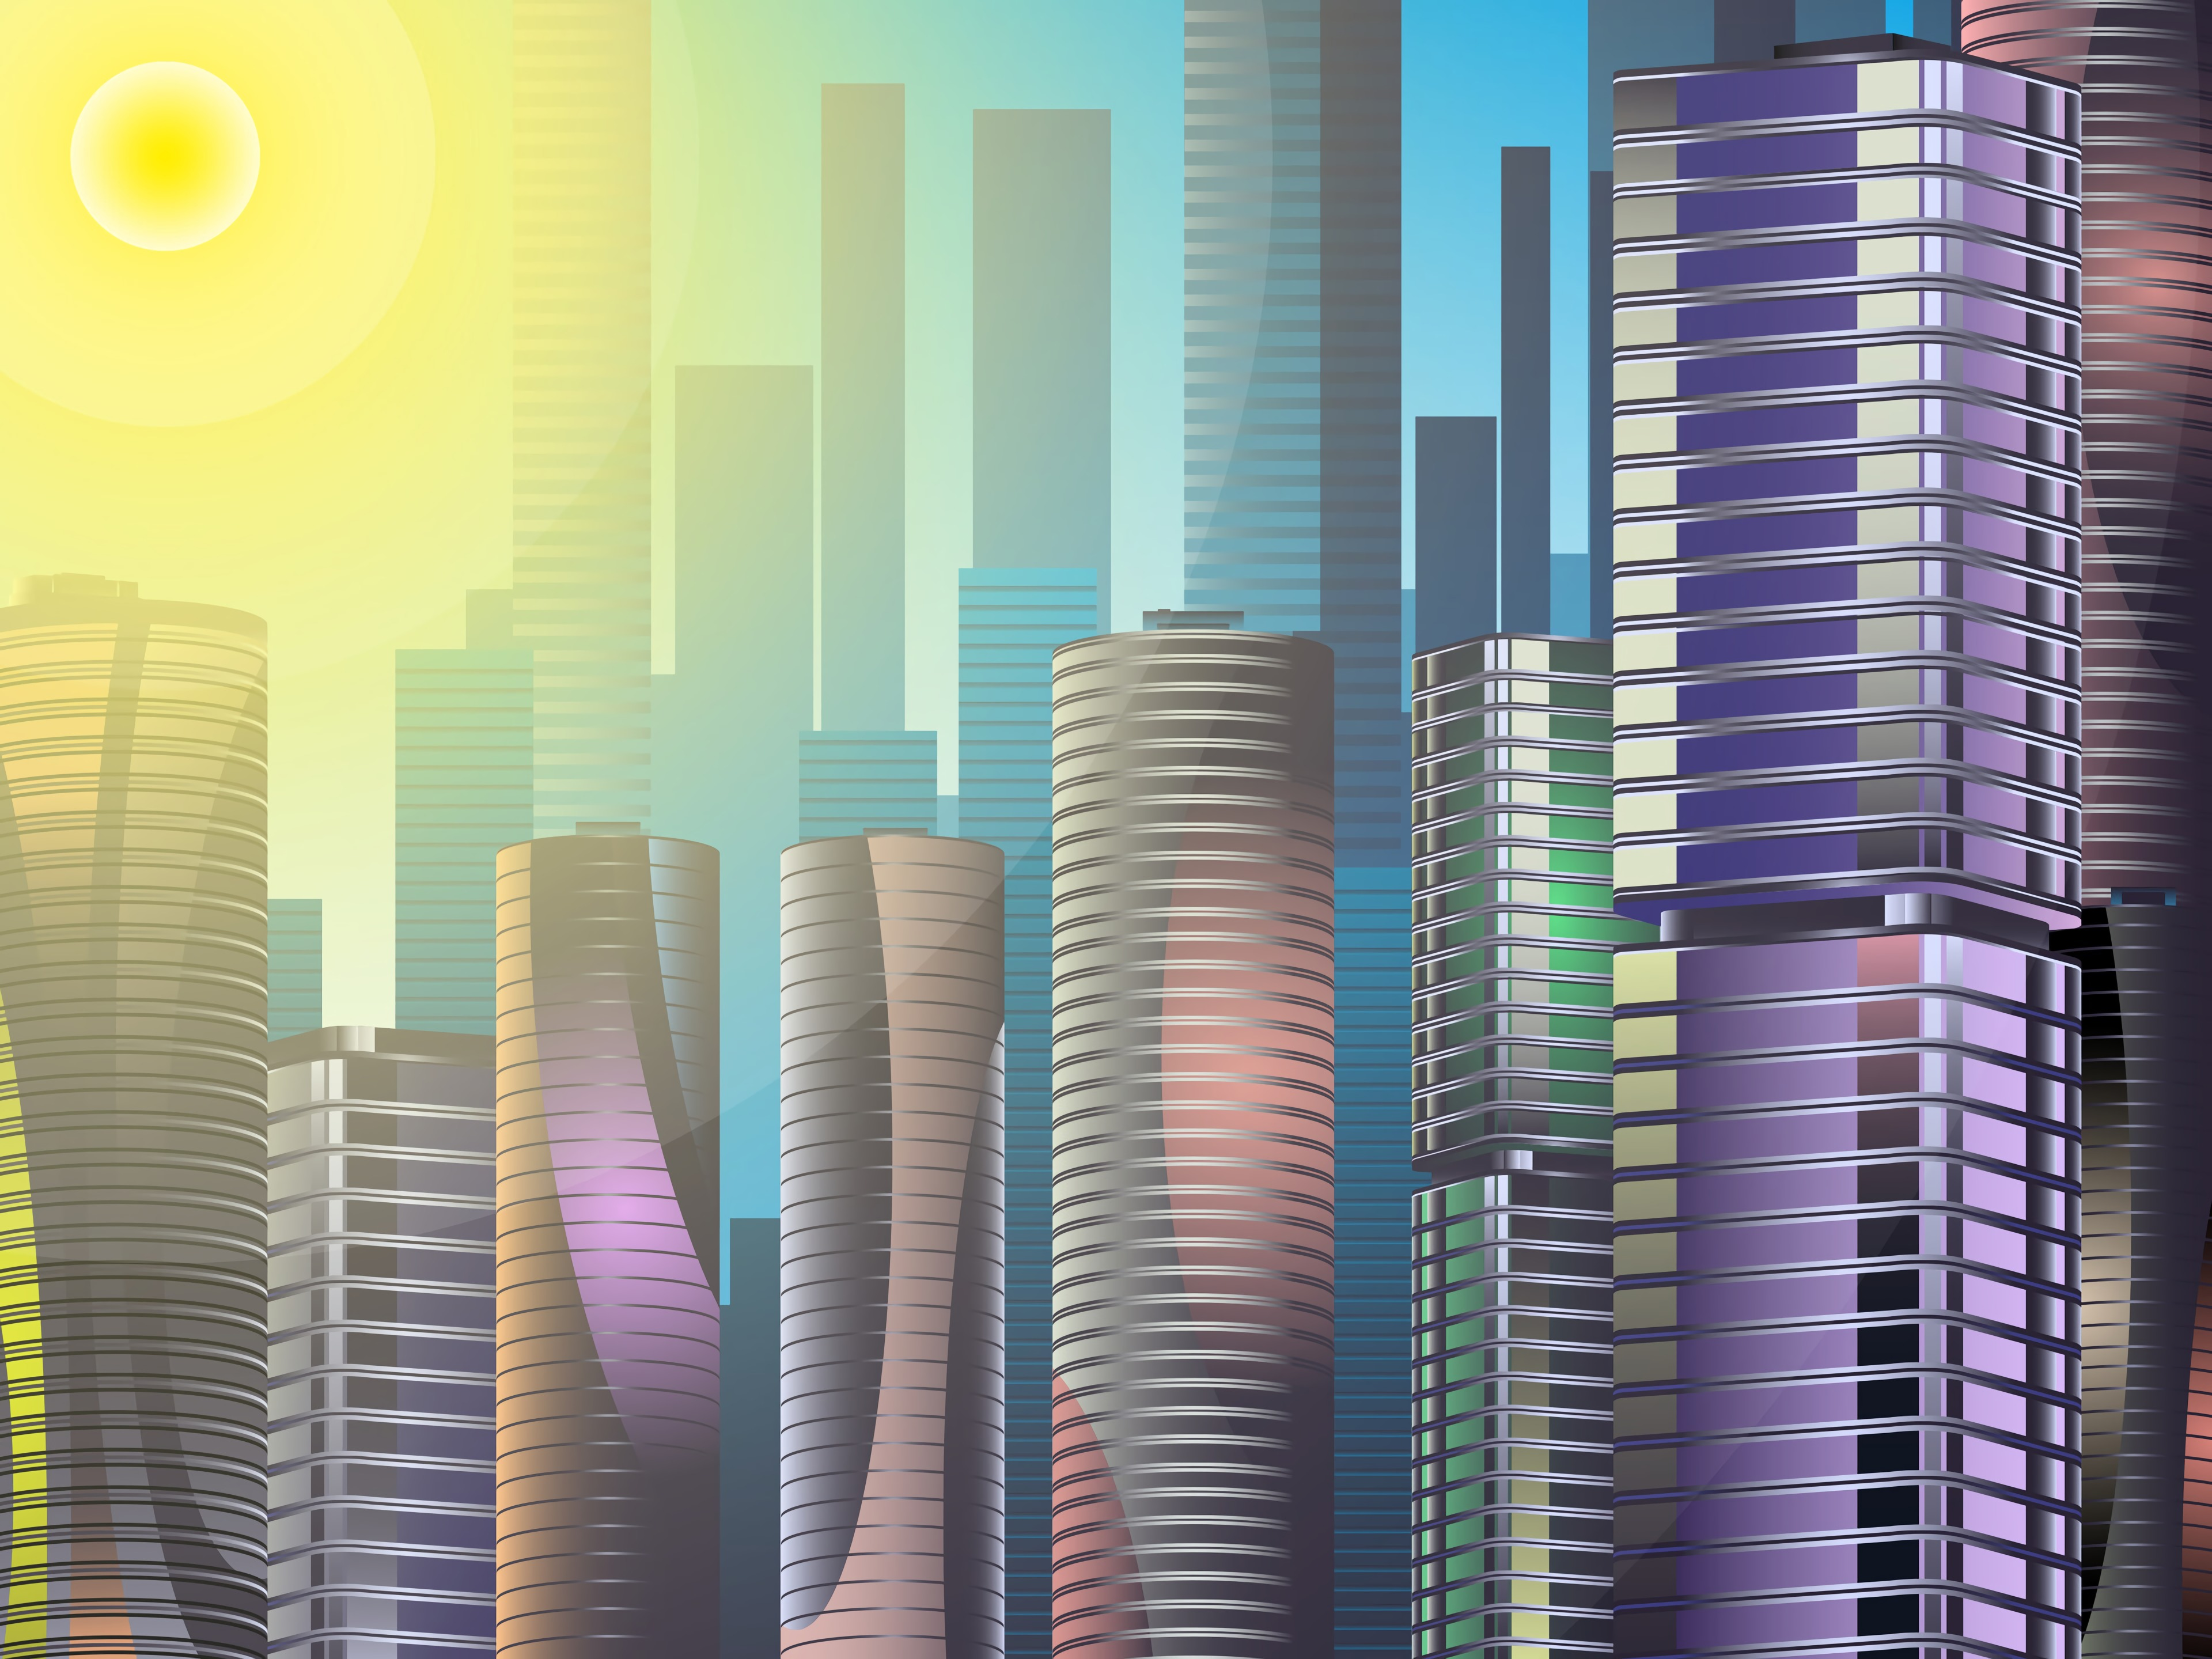 117893 download wallpaper Skyscrapers, City, Building, Art, Sun screensavers and pictures for free